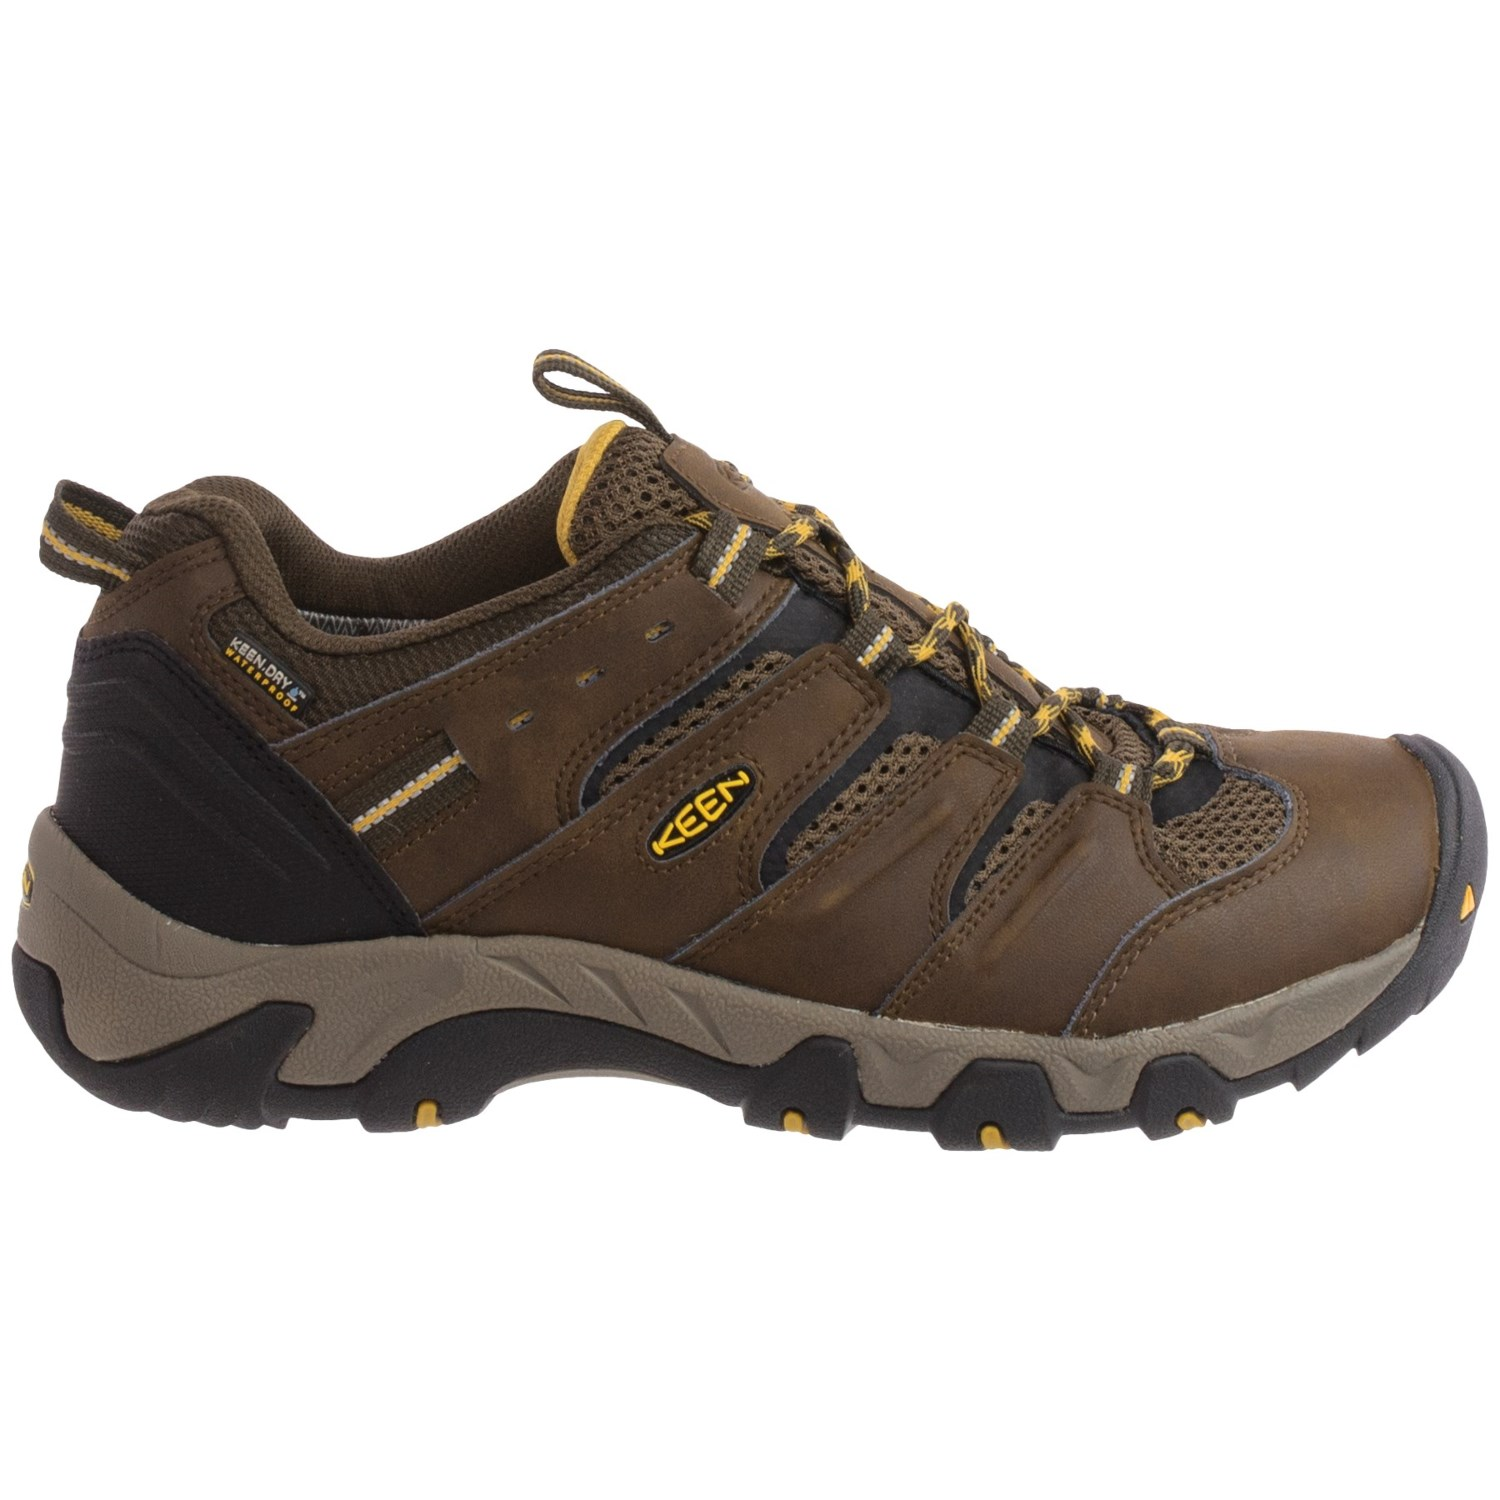 Leather Waterproof Hiking Shoes